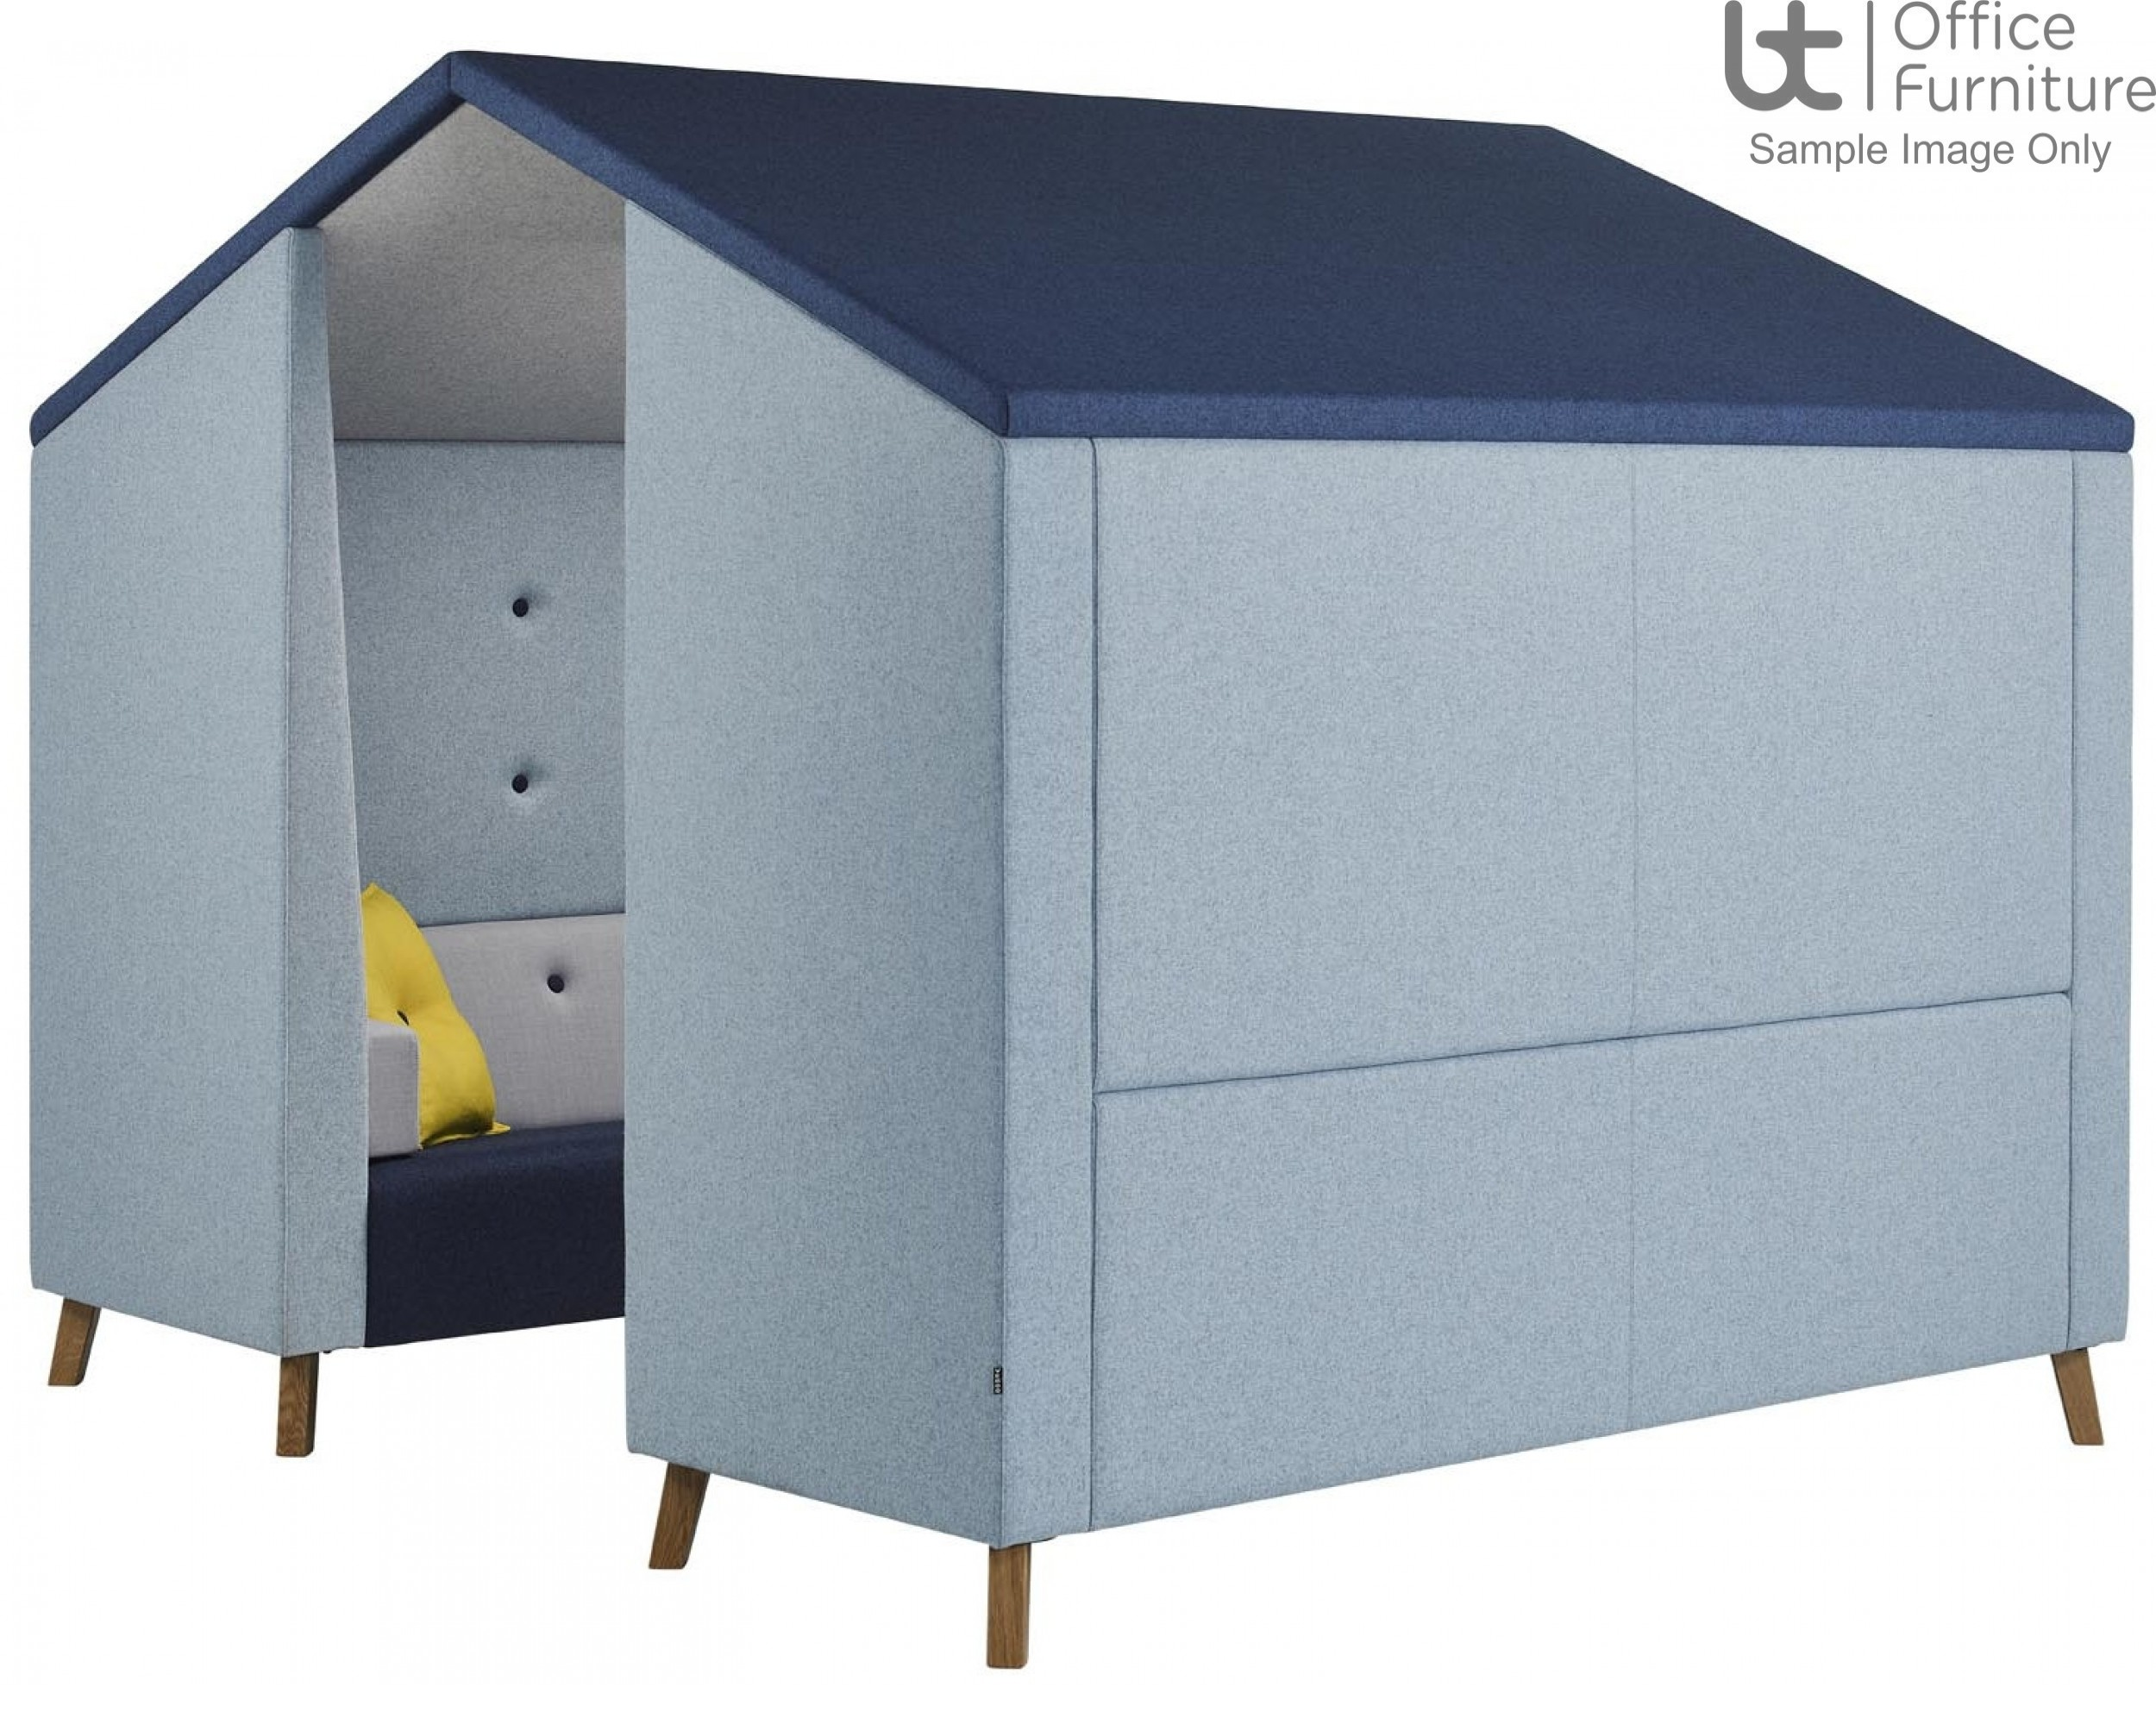 Verco Pod/Booth - Jensen Hut Four-Person Unit, with Acoustic Surround and Upholstered Roof